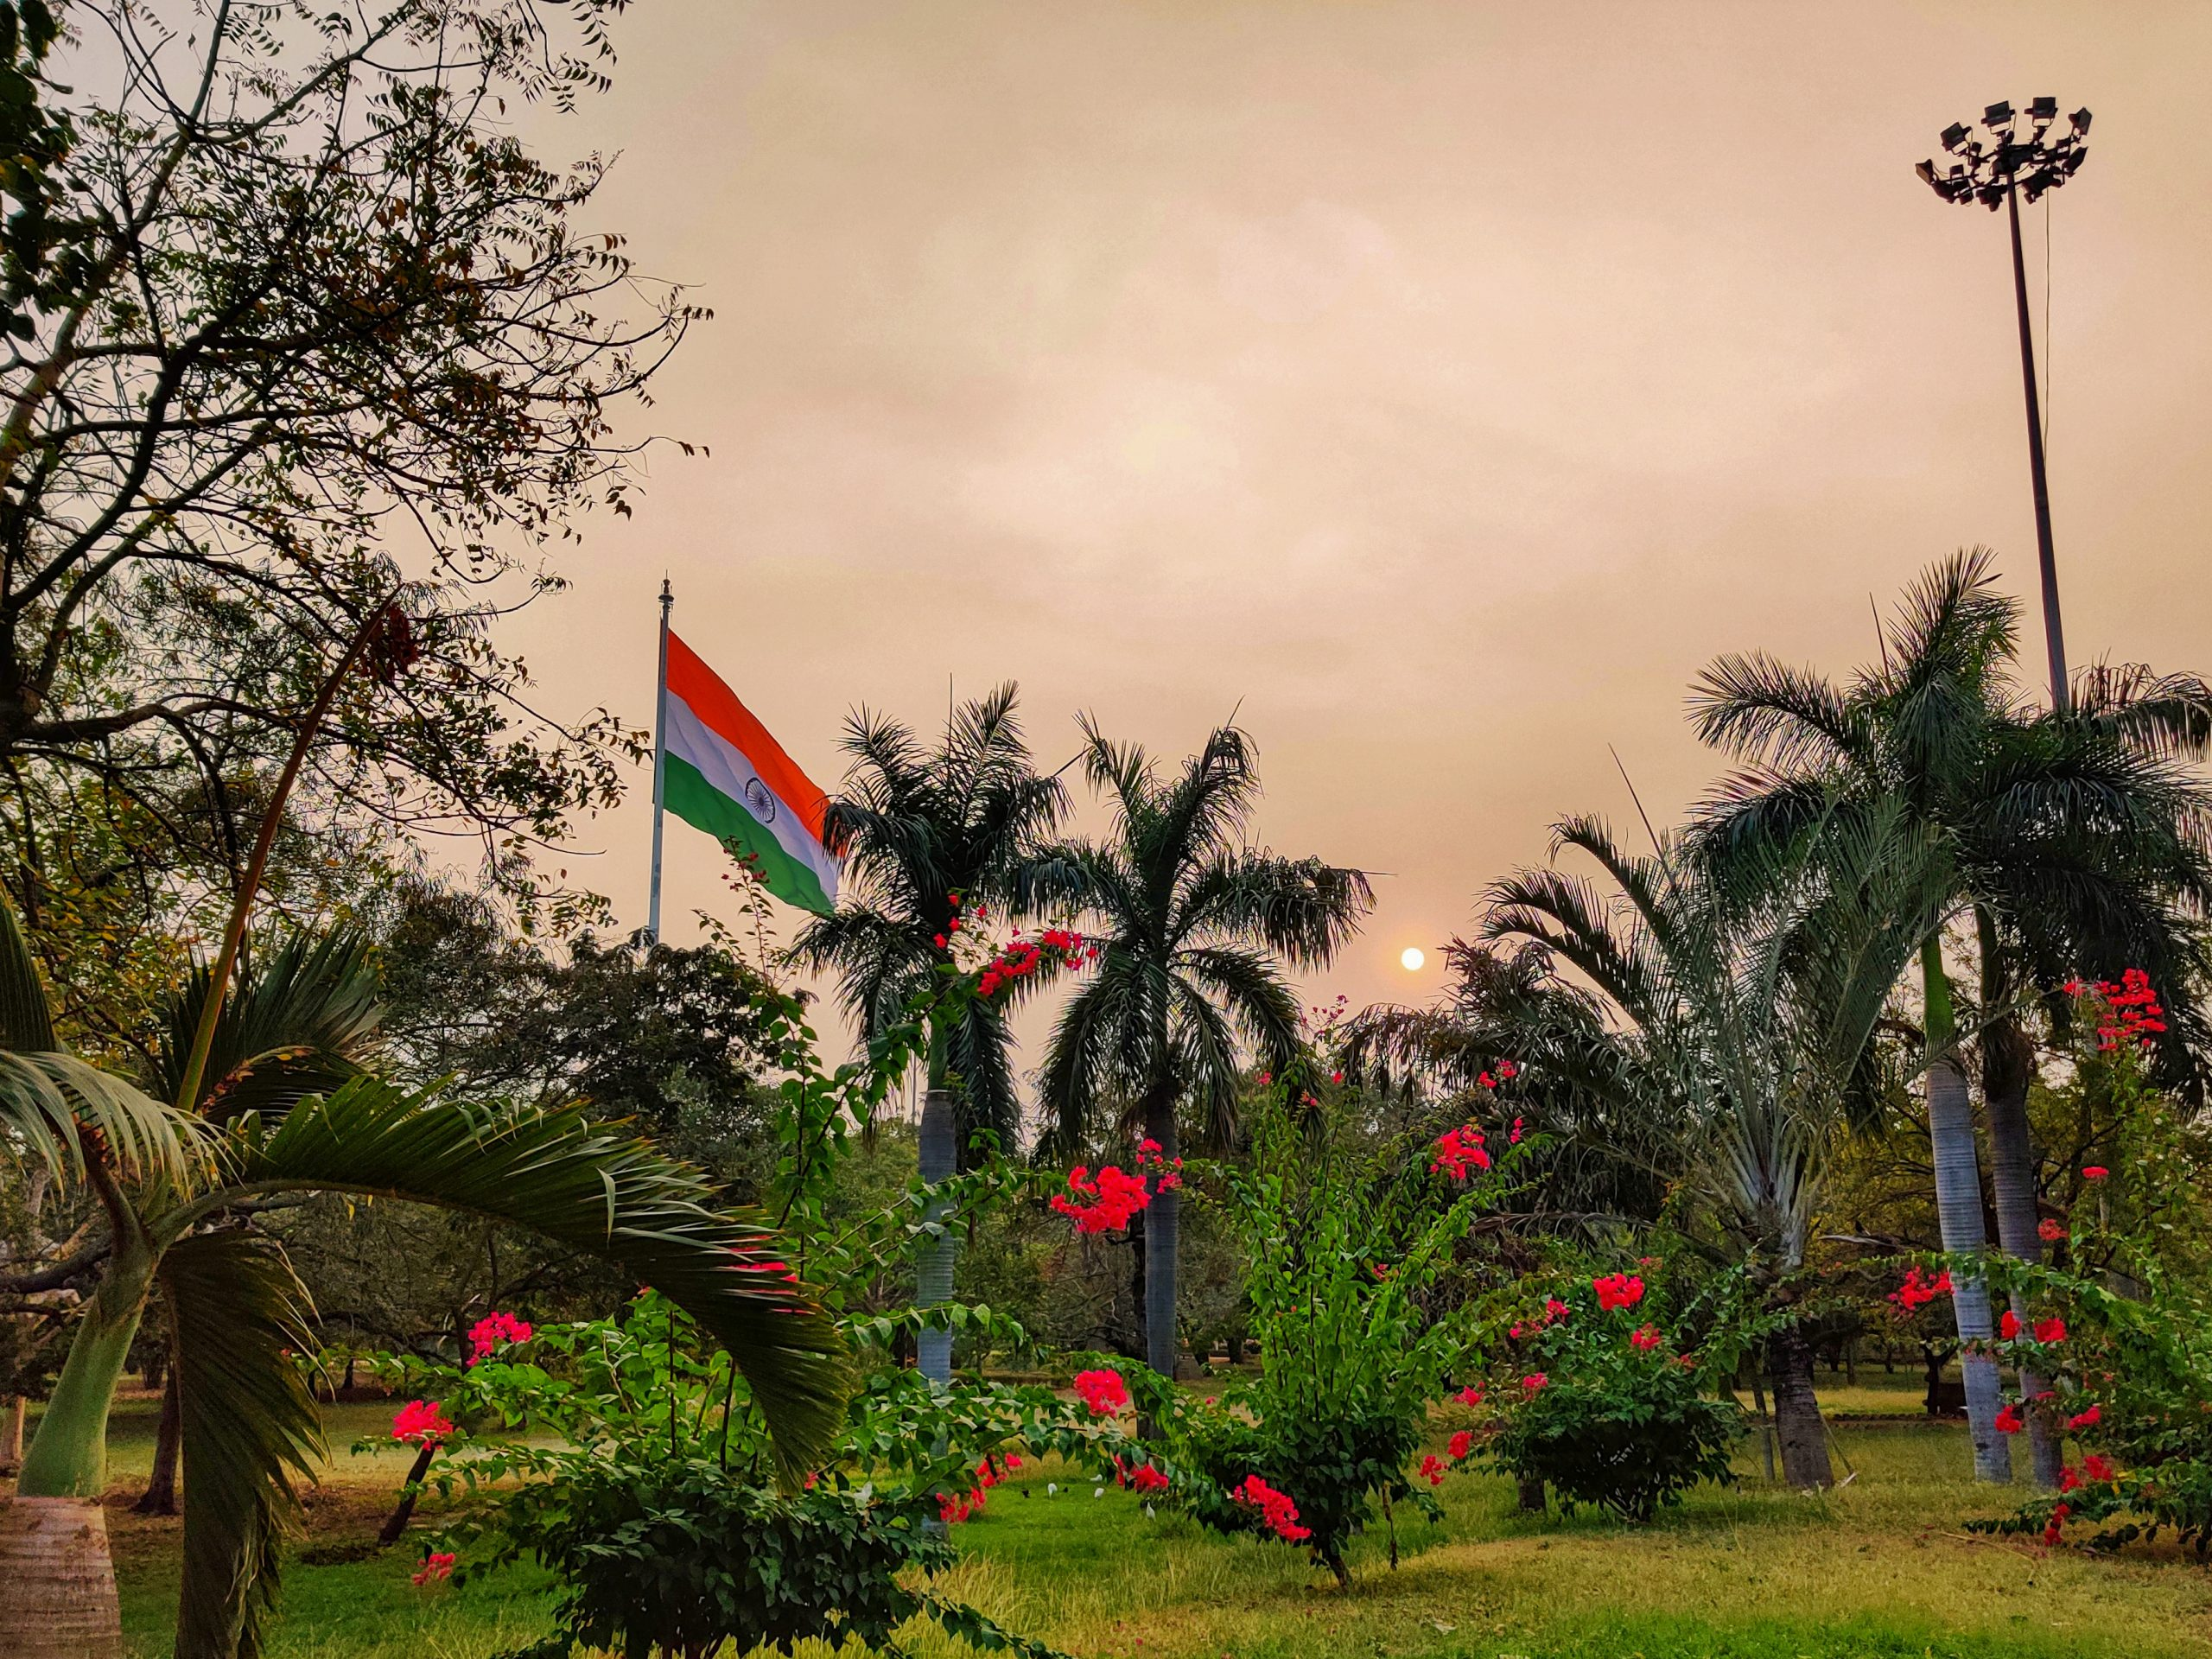 Indian flag in a park